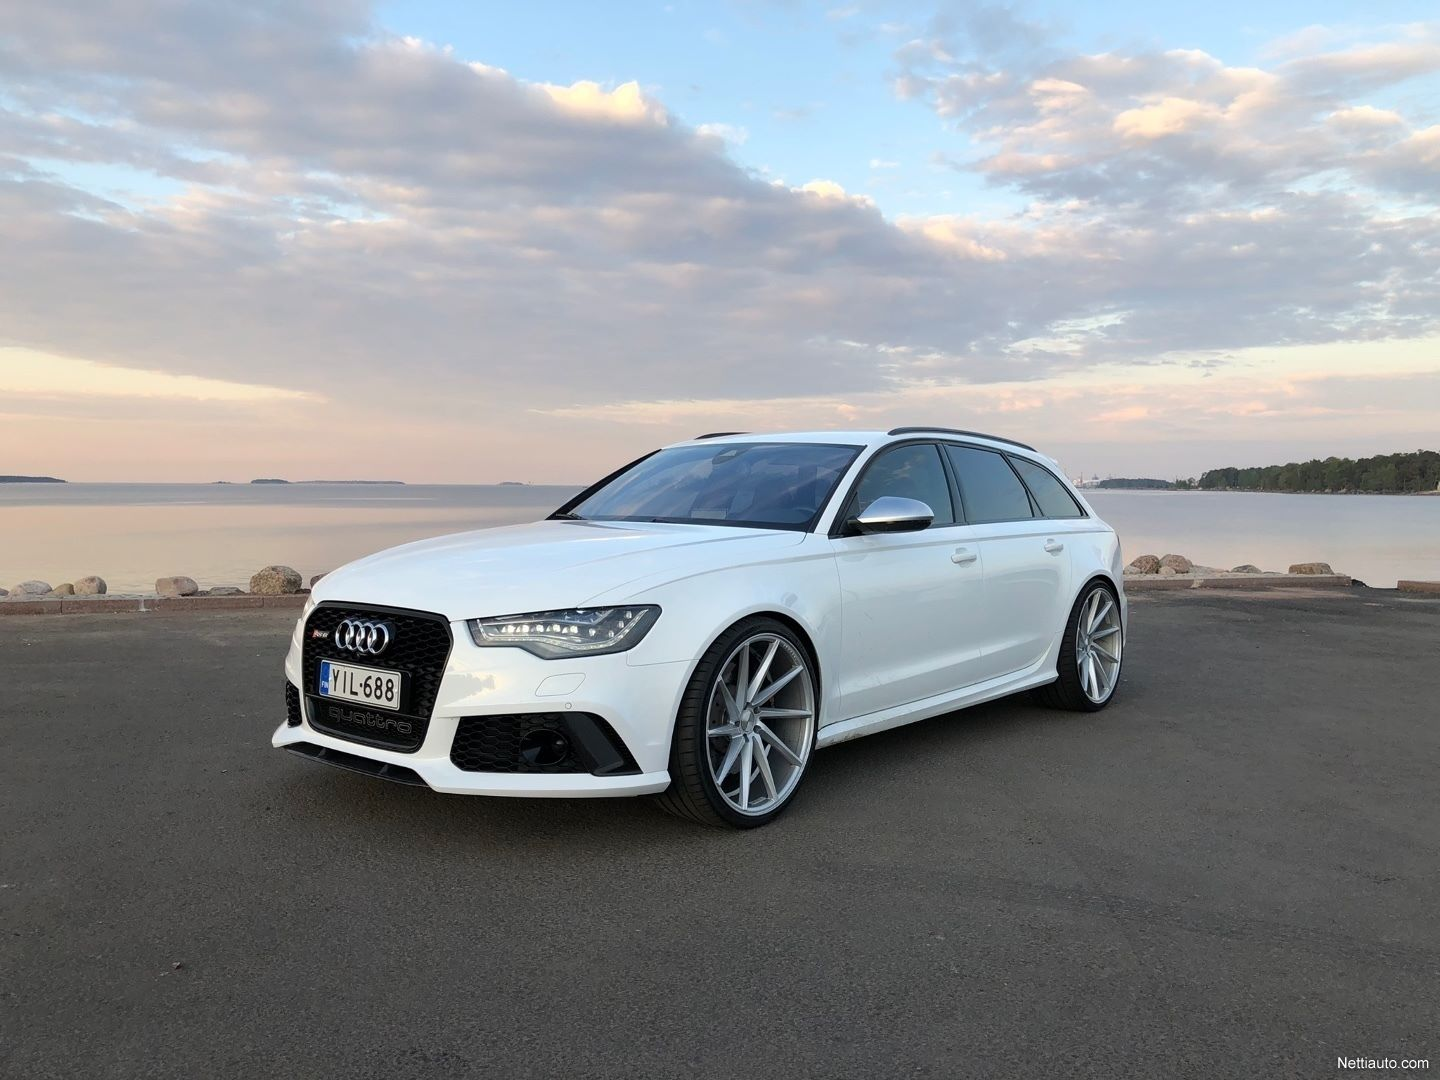 Audi-RS6-Avant-Kimi-Raikkonen-for-sale-7